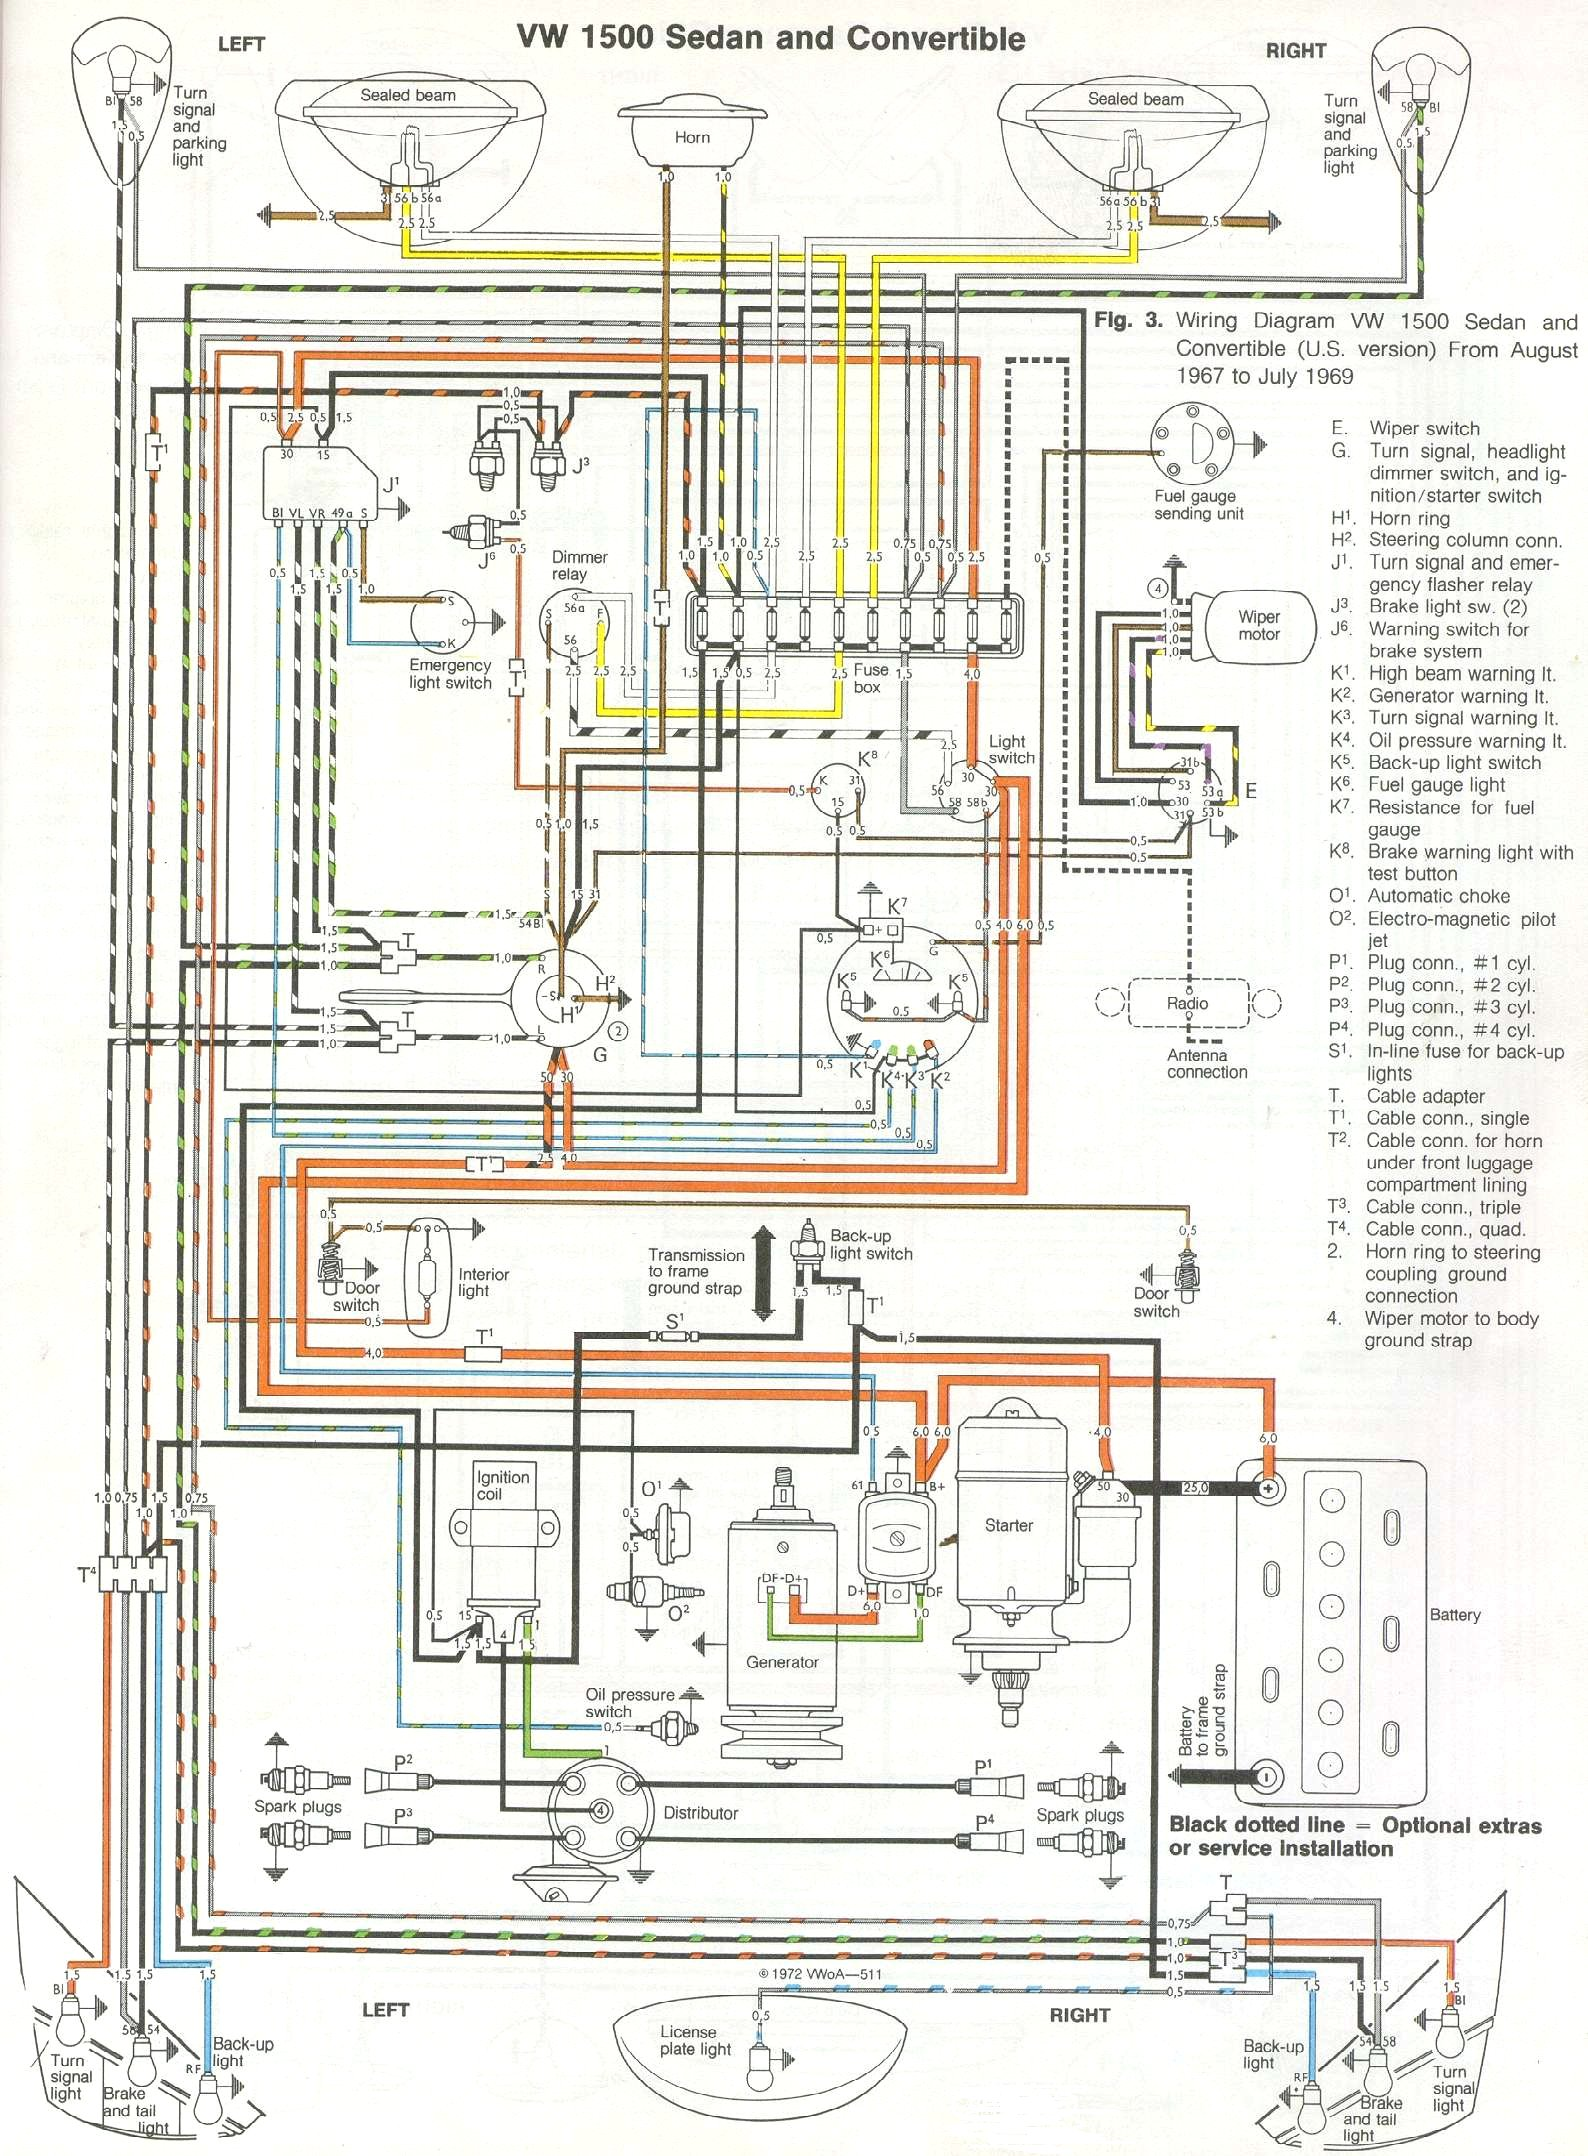 bug_6869 1969 71 beetle wiring diagram thegoldenbug com beetle wiring diagram to fix a/c fan at readyjetset.co